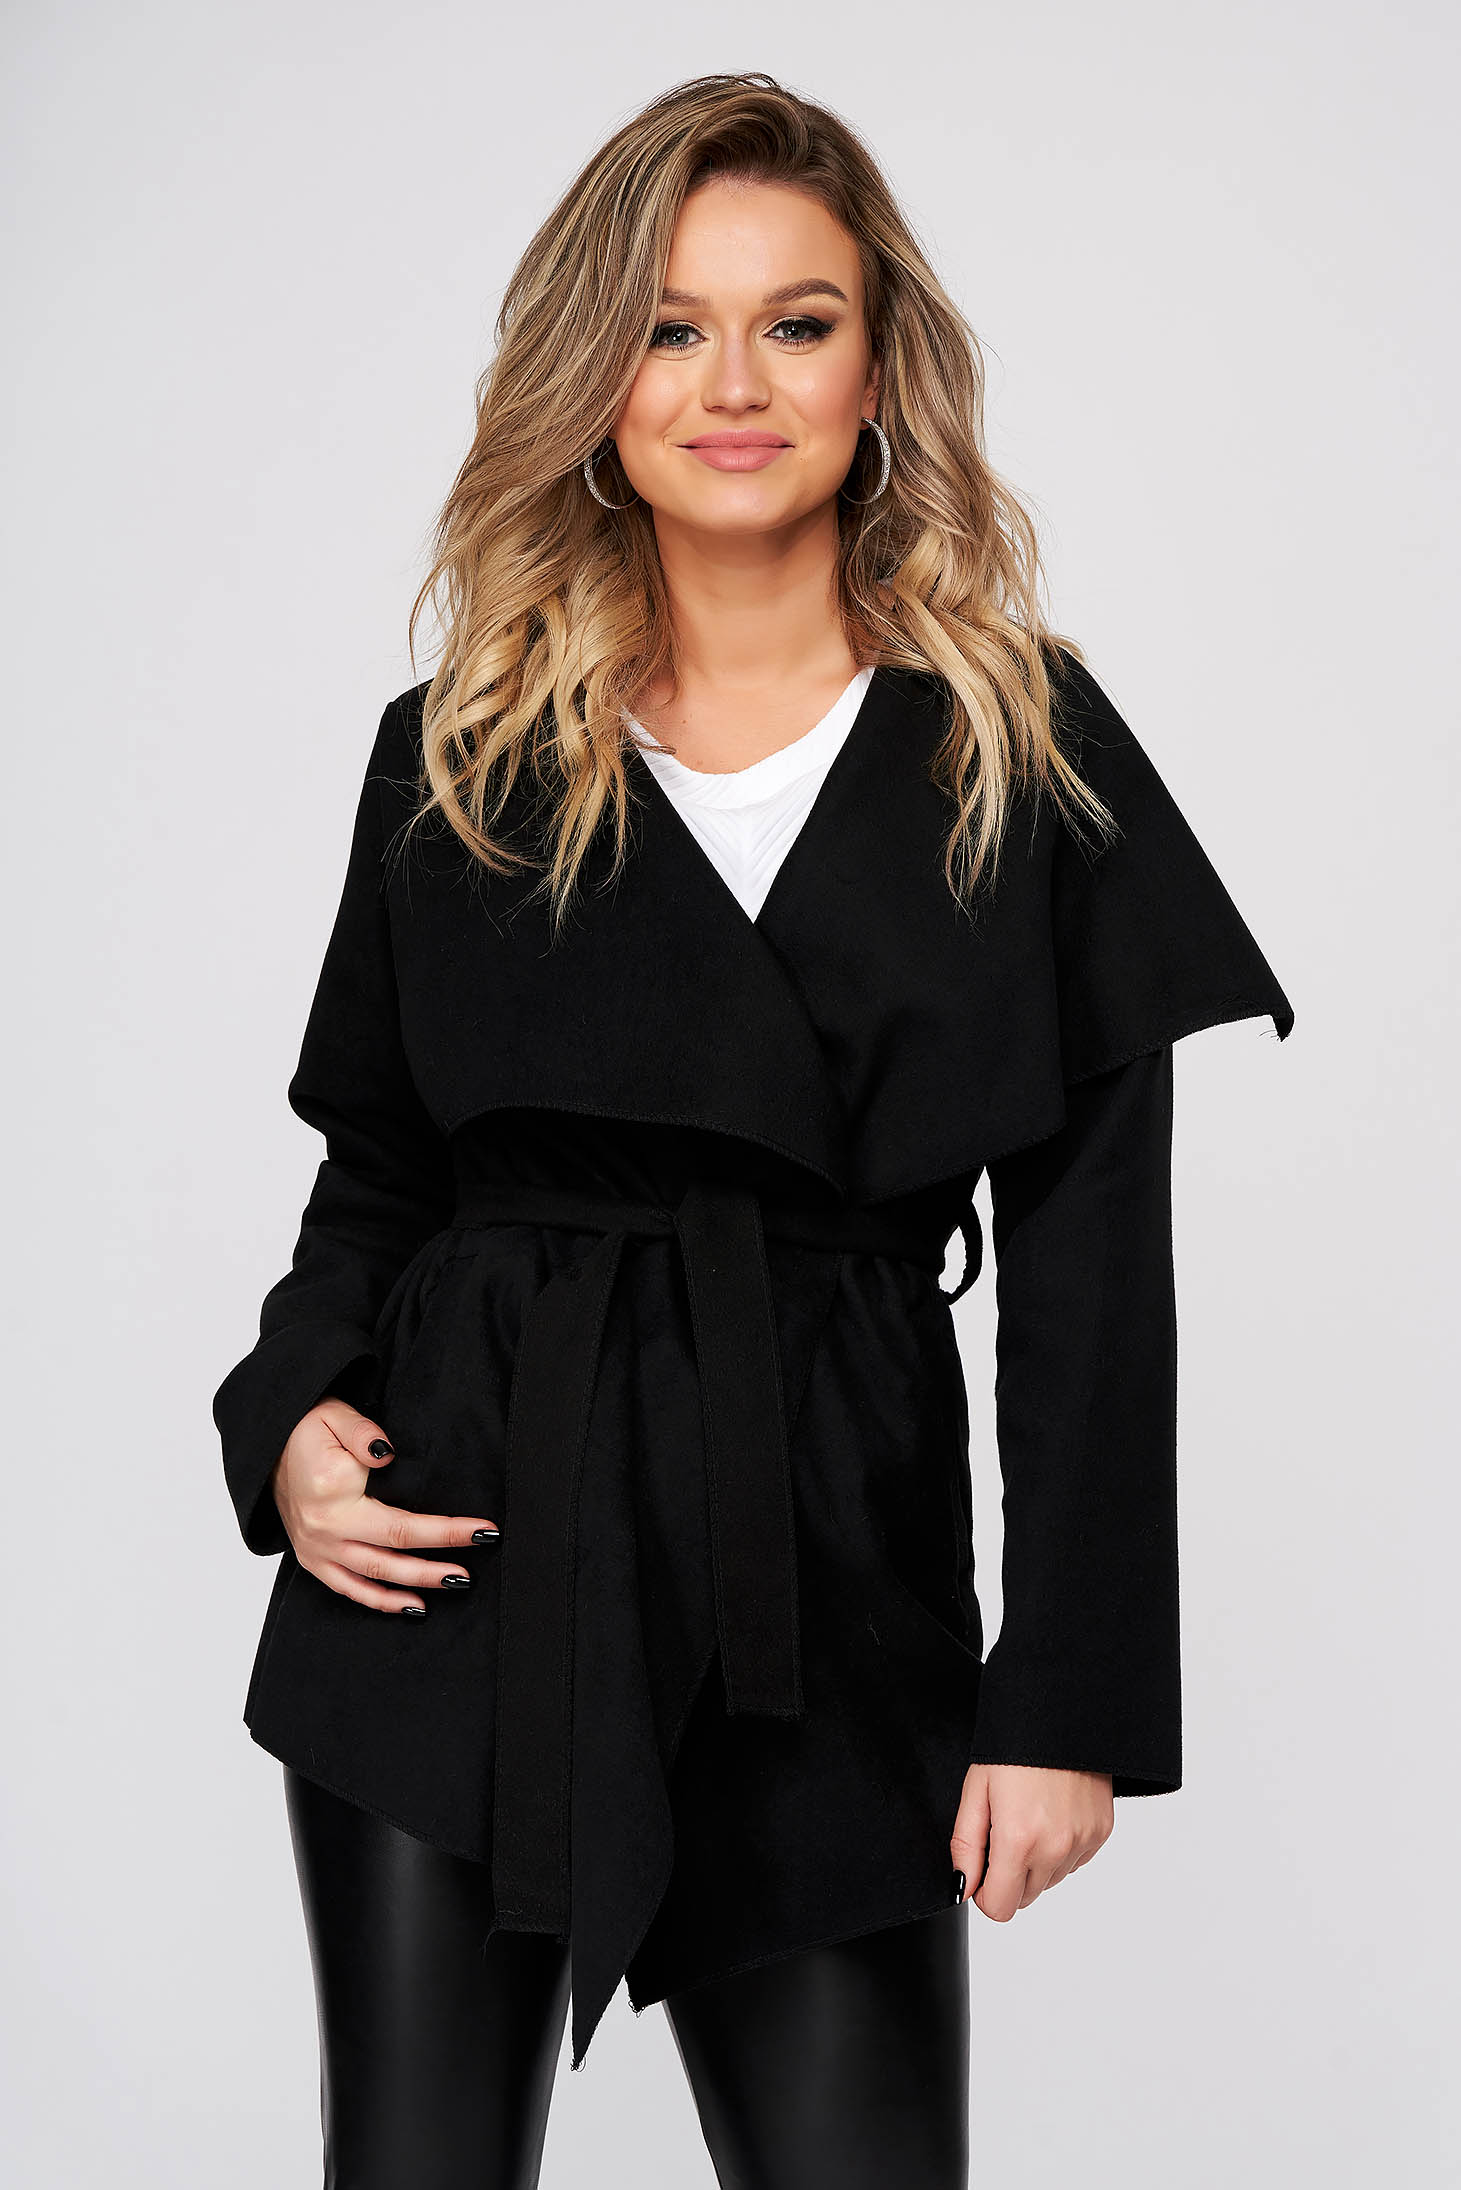 Black trenchcoat casual long sleeve from soft fabric accessorized with tied waistband